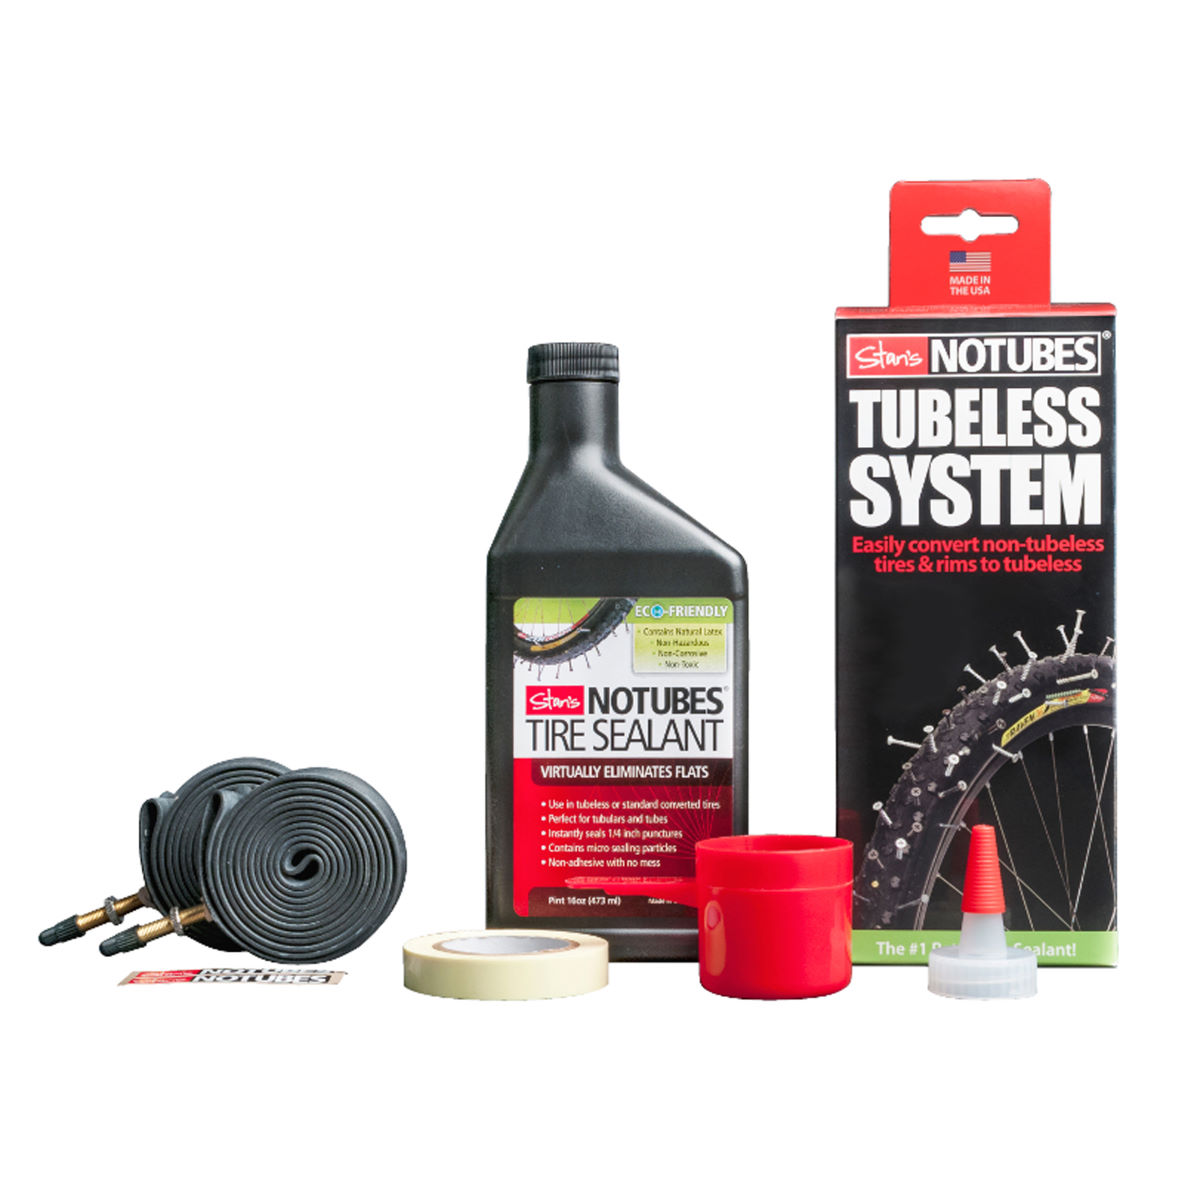 Kit tubeless Stans No Tubes - All Mountain 29er Noir Accessoires tubeless